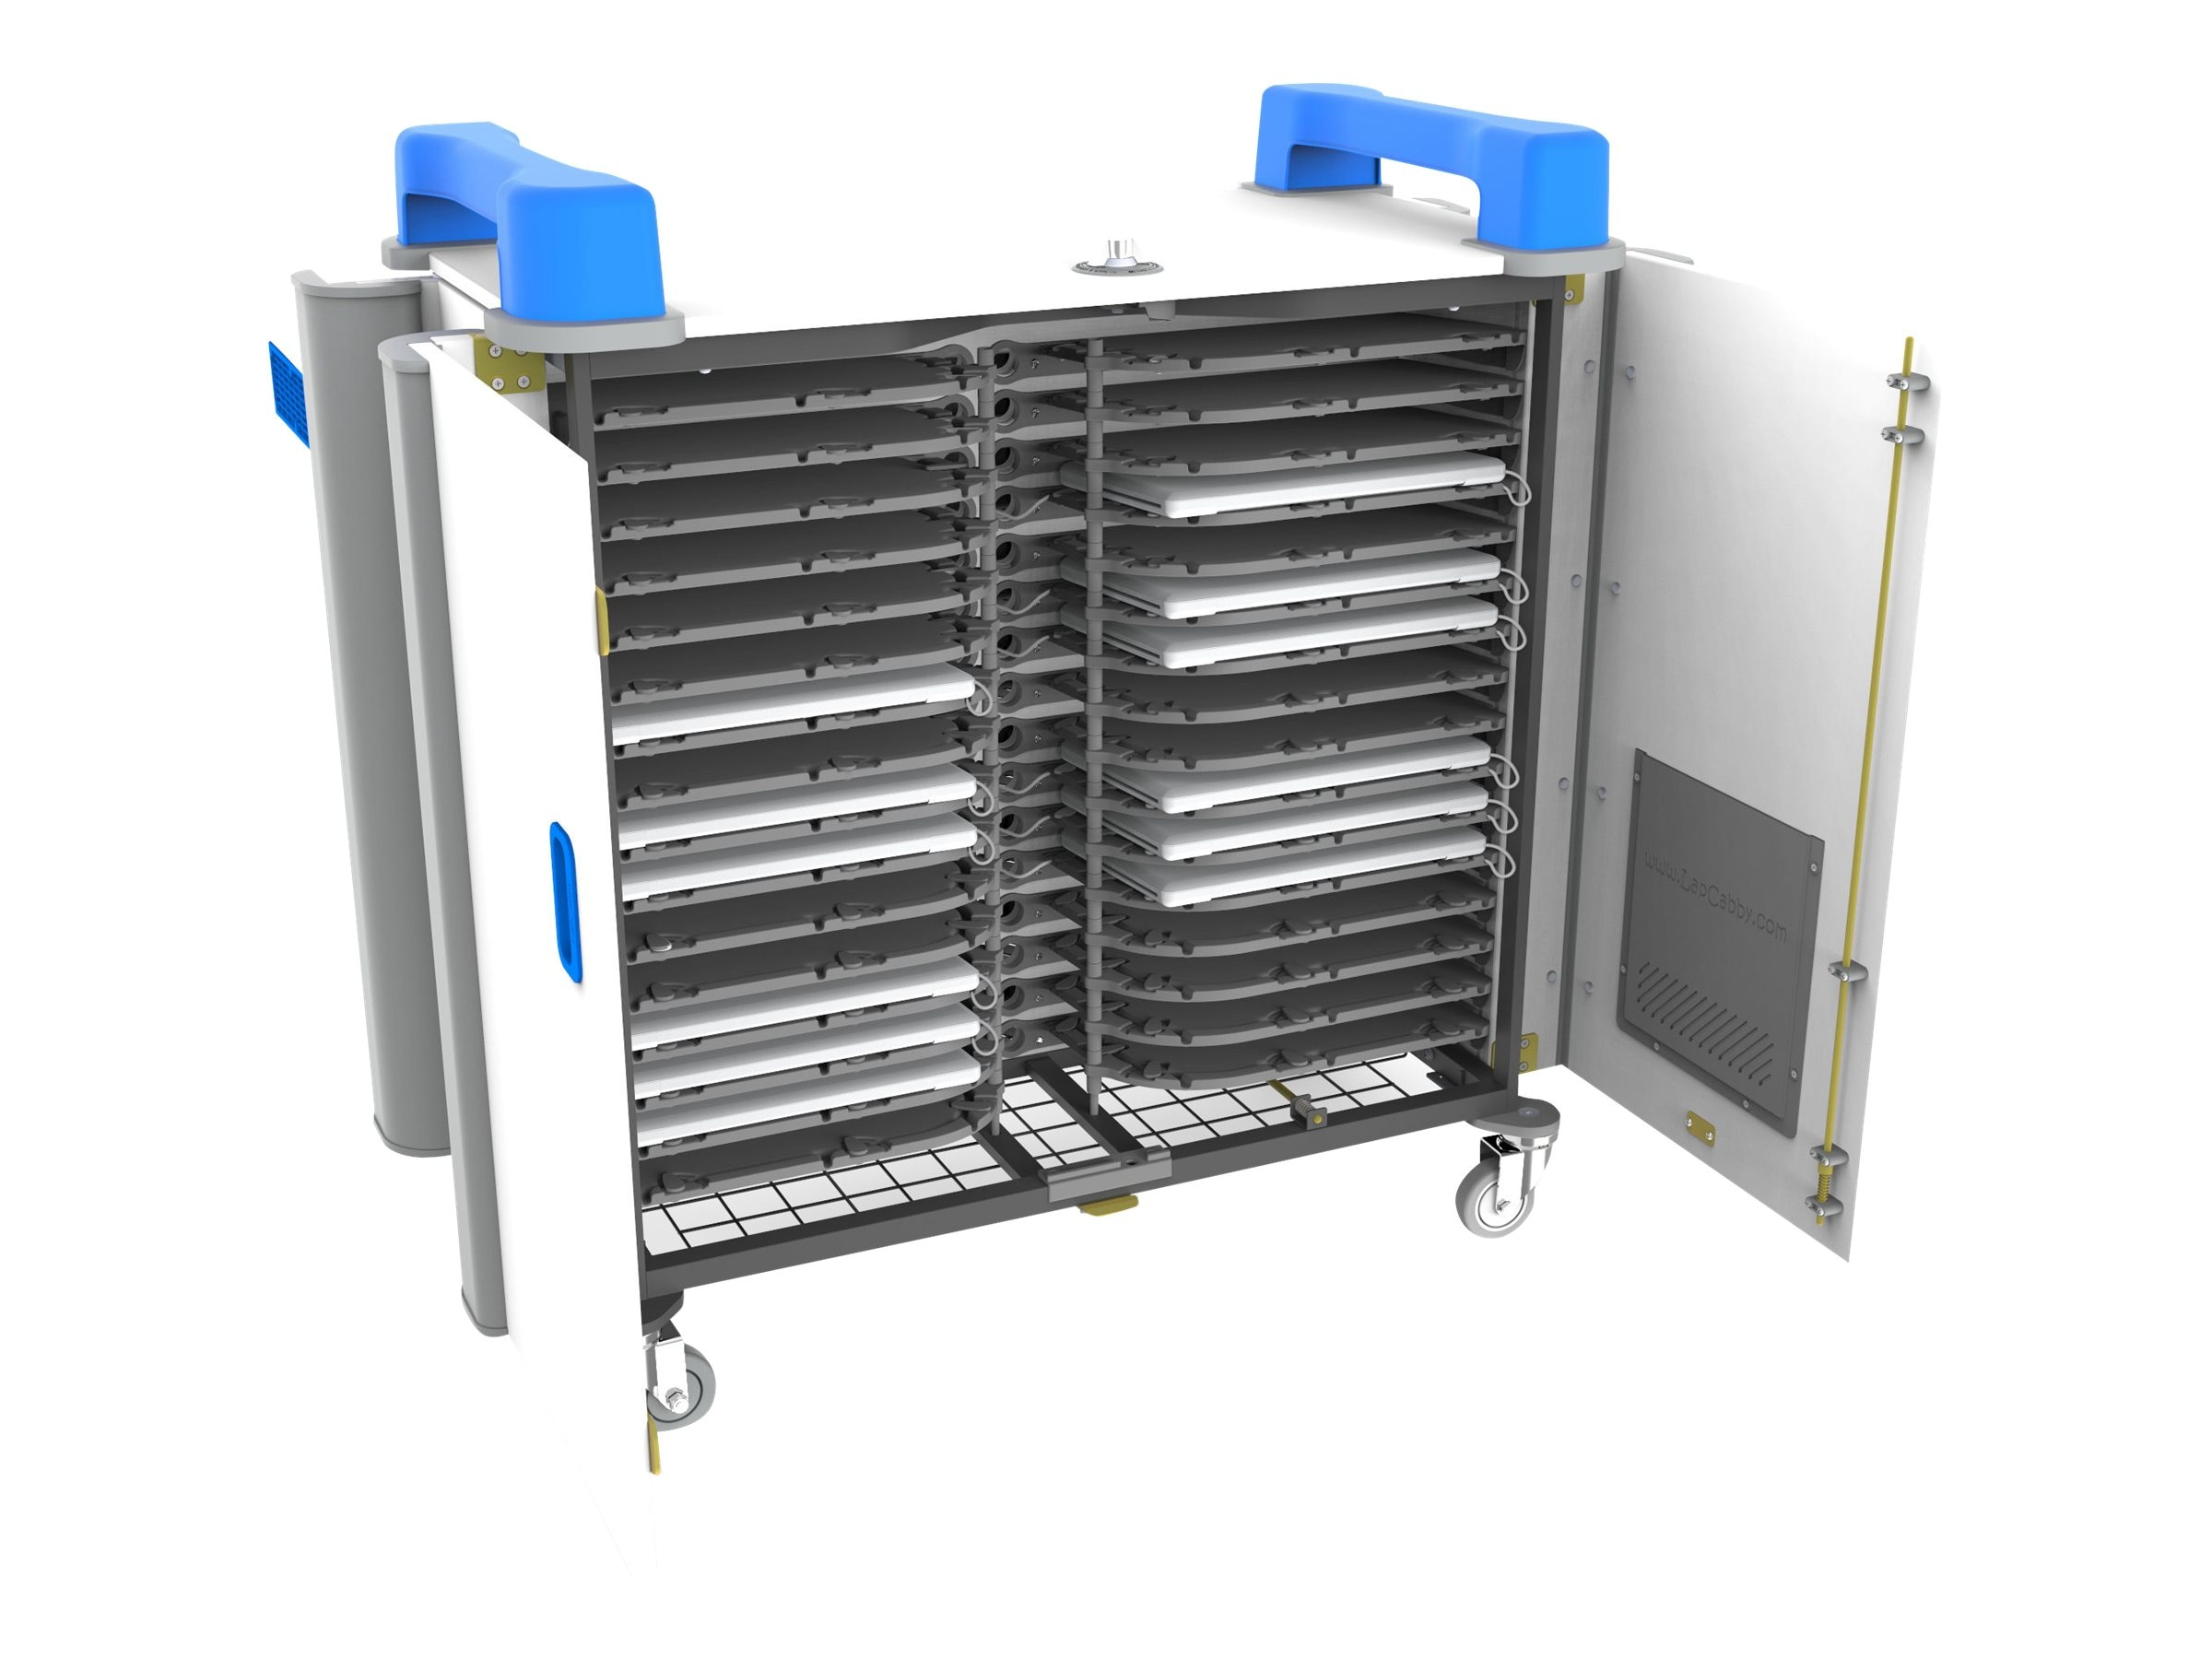 LapCabby 32H 32-Unit Universal Device Cart, Blue